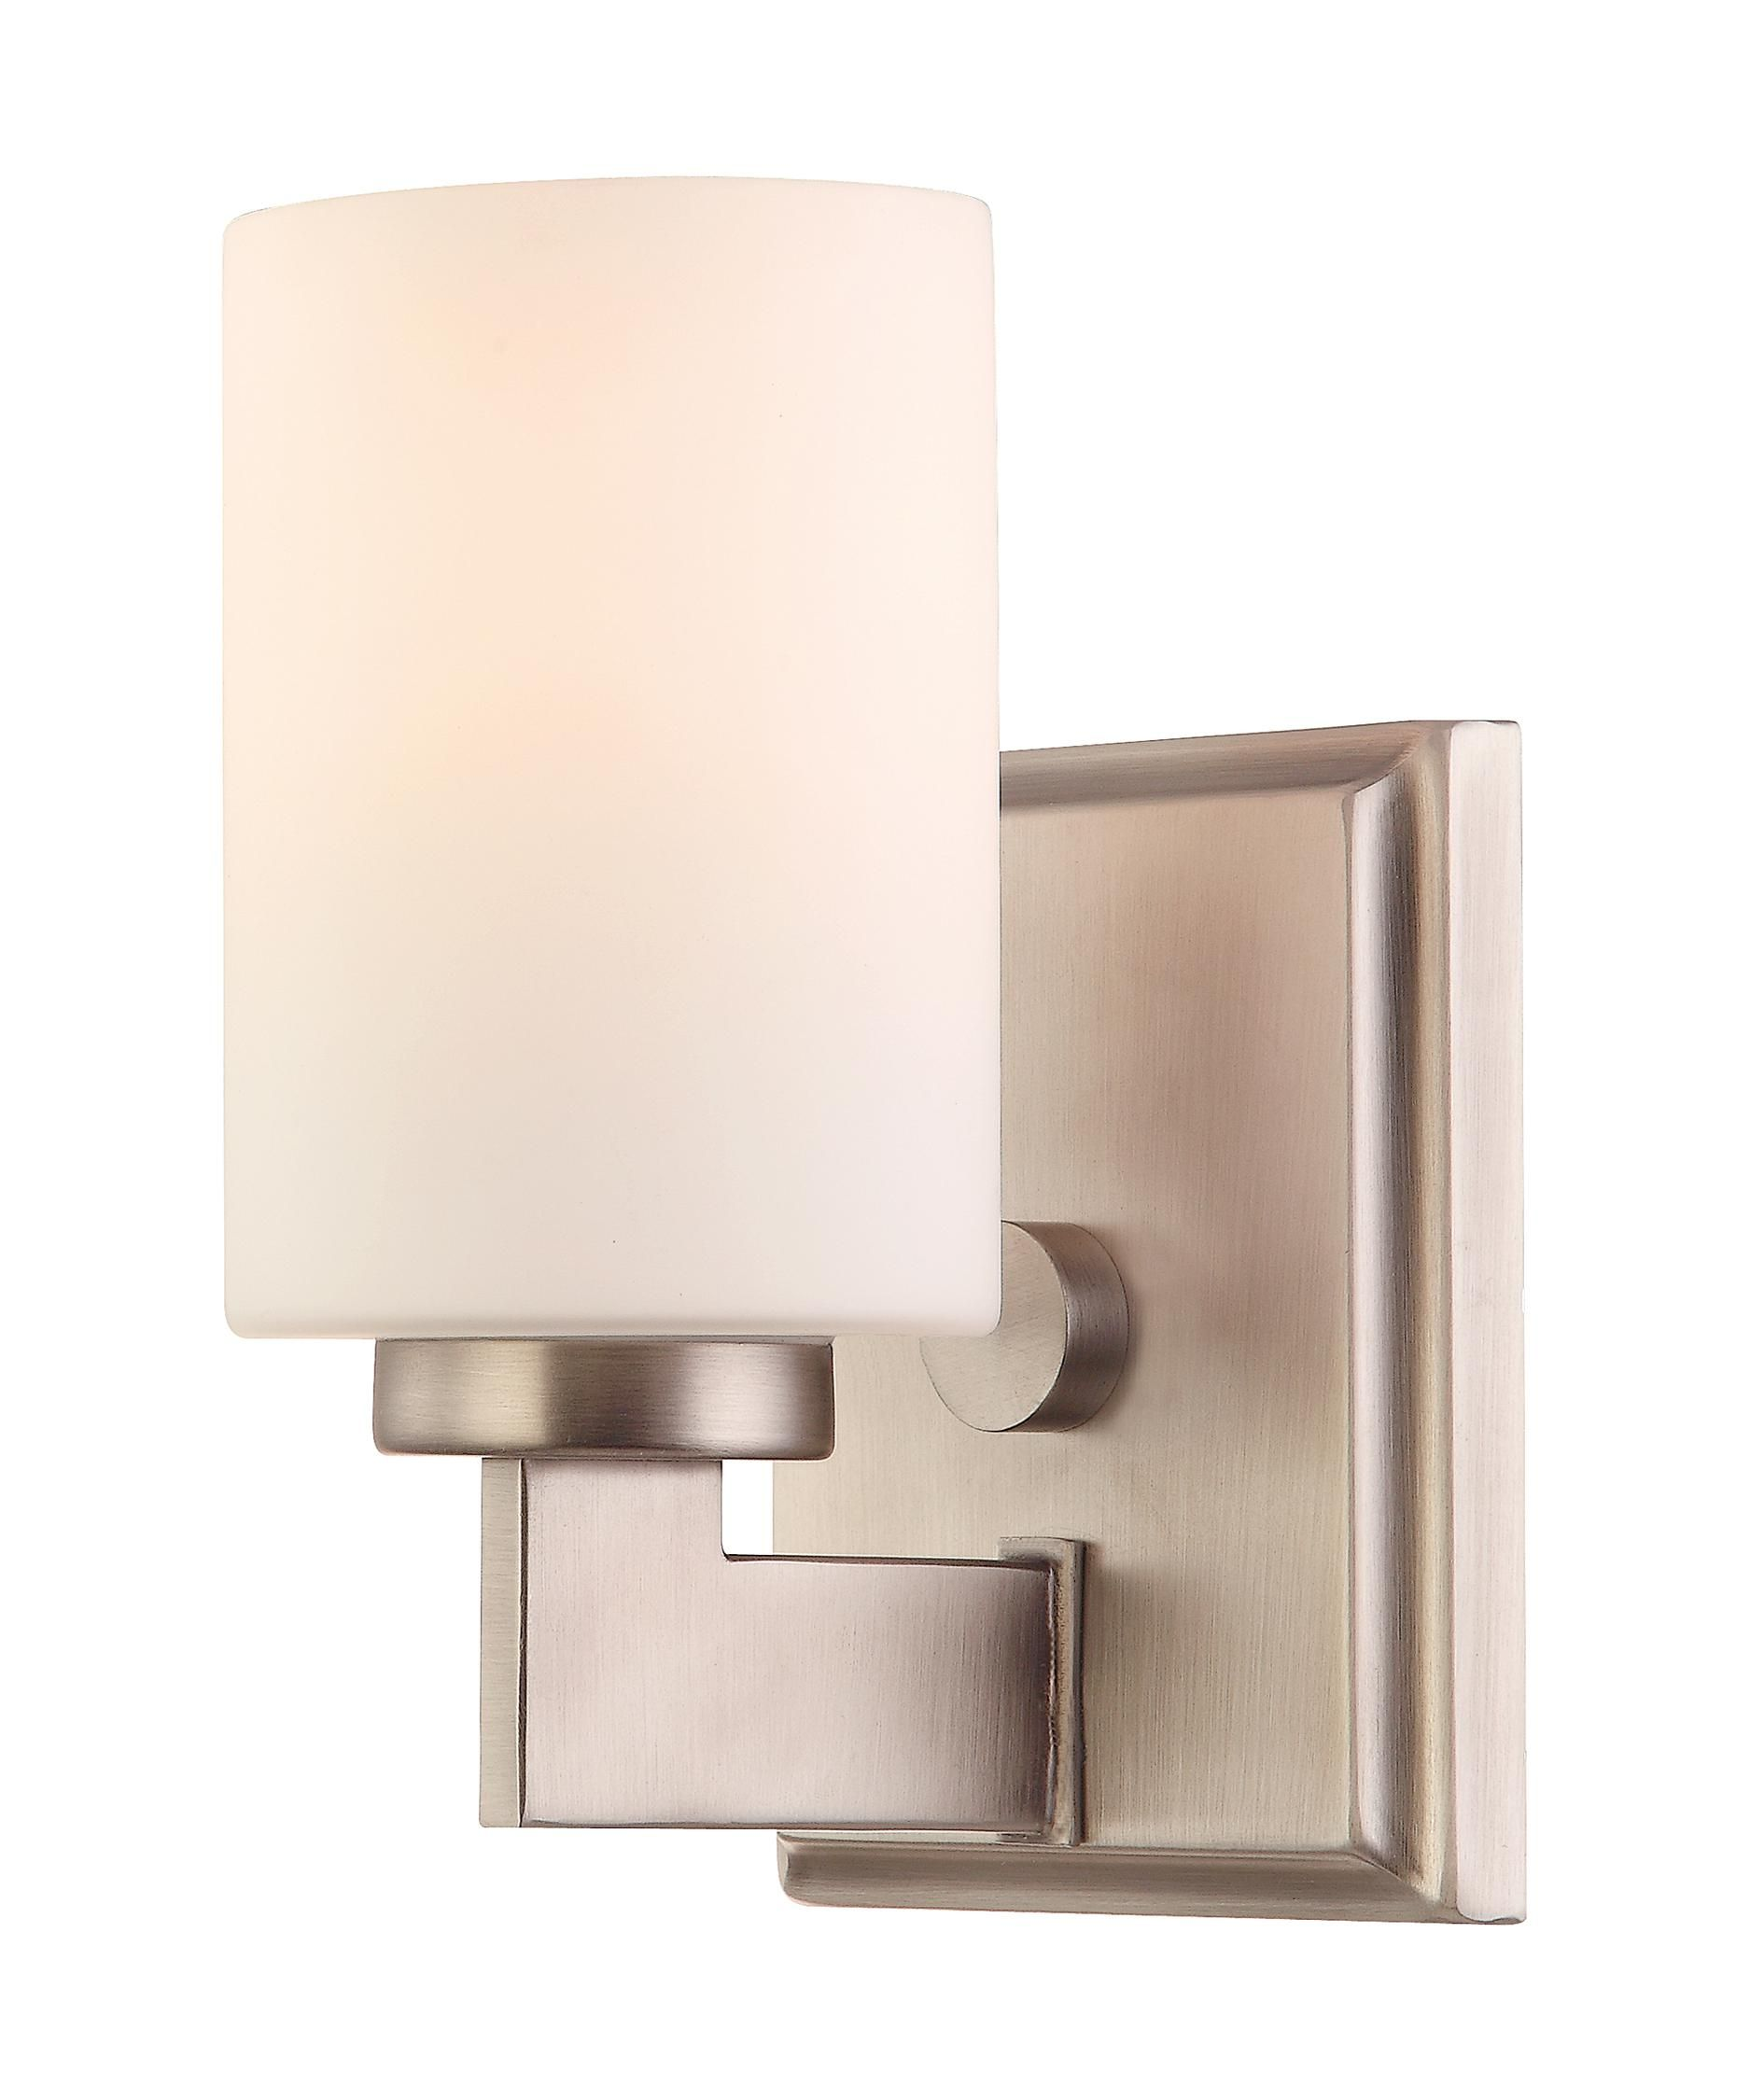 ic fixtures ceiling sconce lighting mount inspirational of bathroom victoria wall luxury flush plumb style light victorian lights flos uk semi by